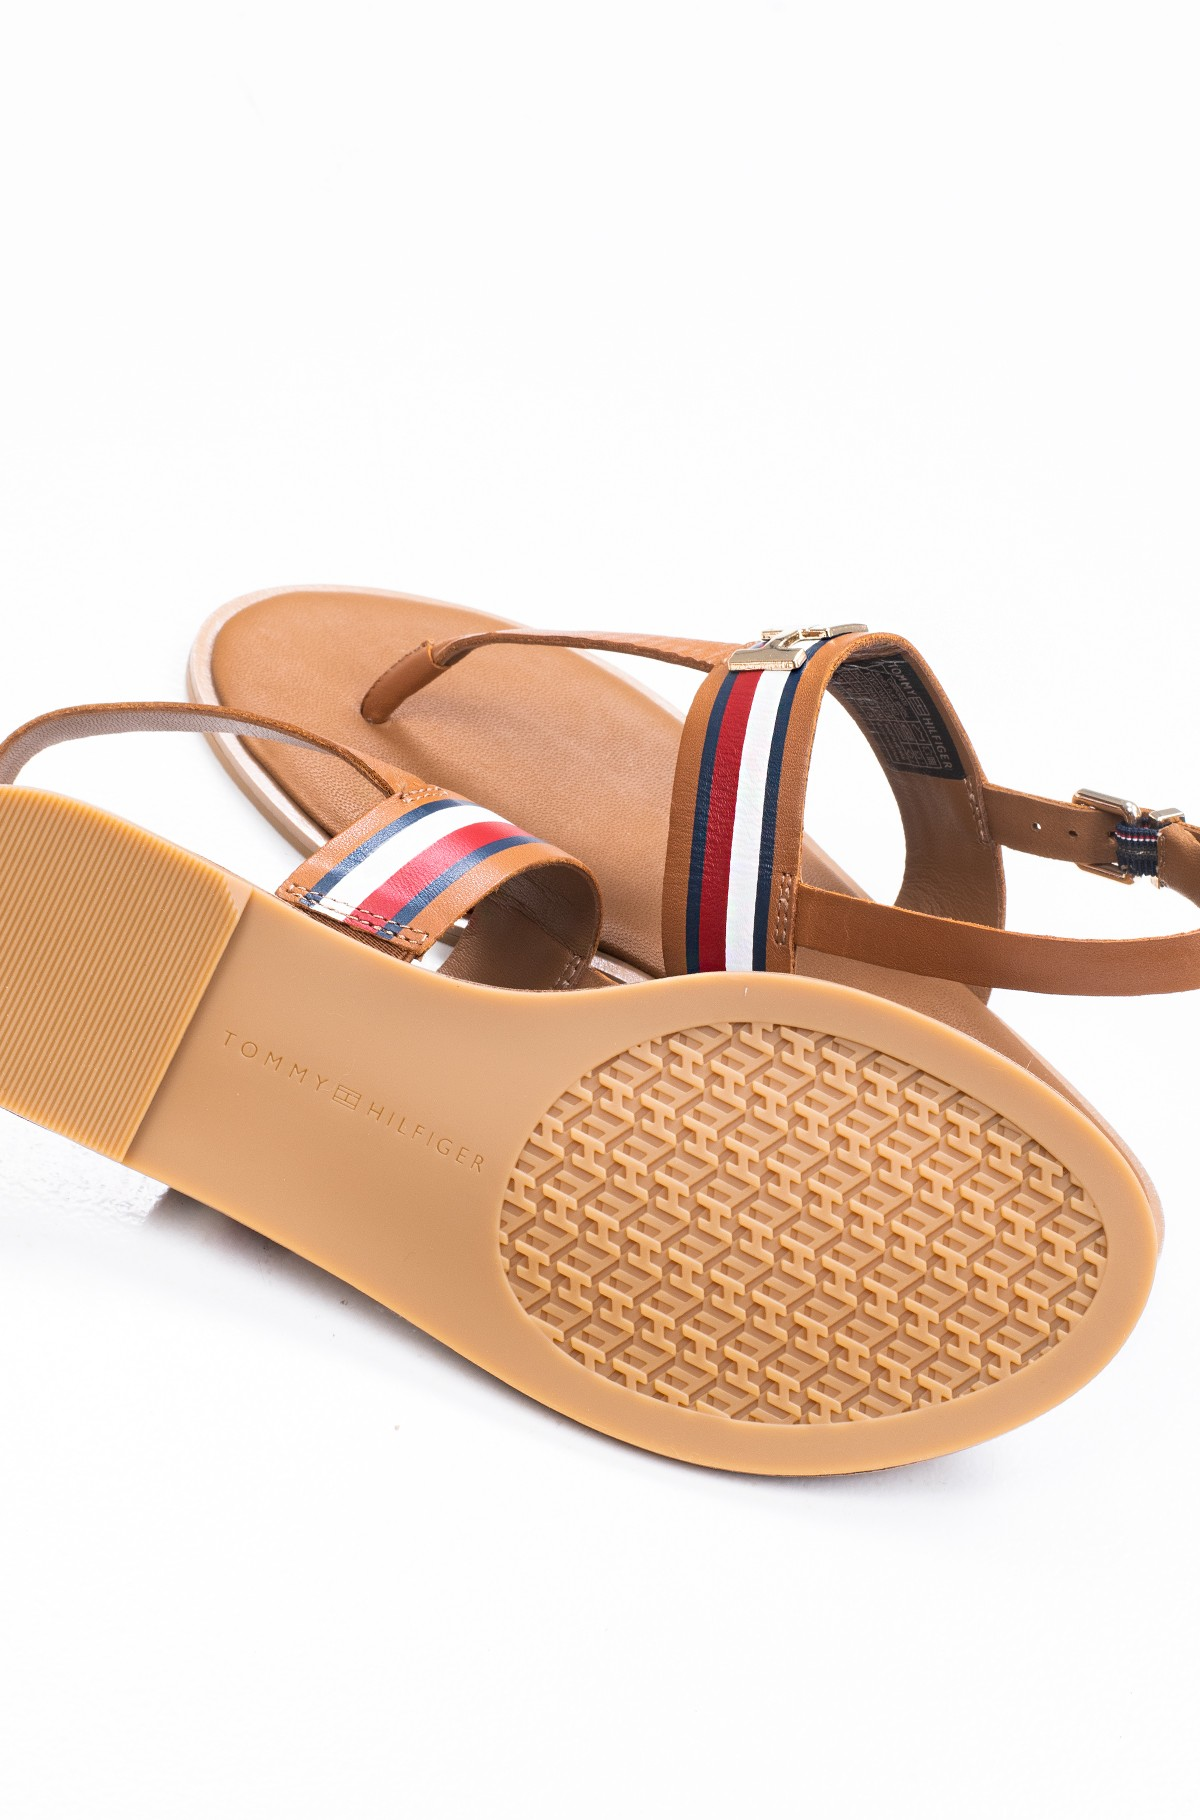 Sandals CORPORATE LEATHER FLAT SANDAL-full-3